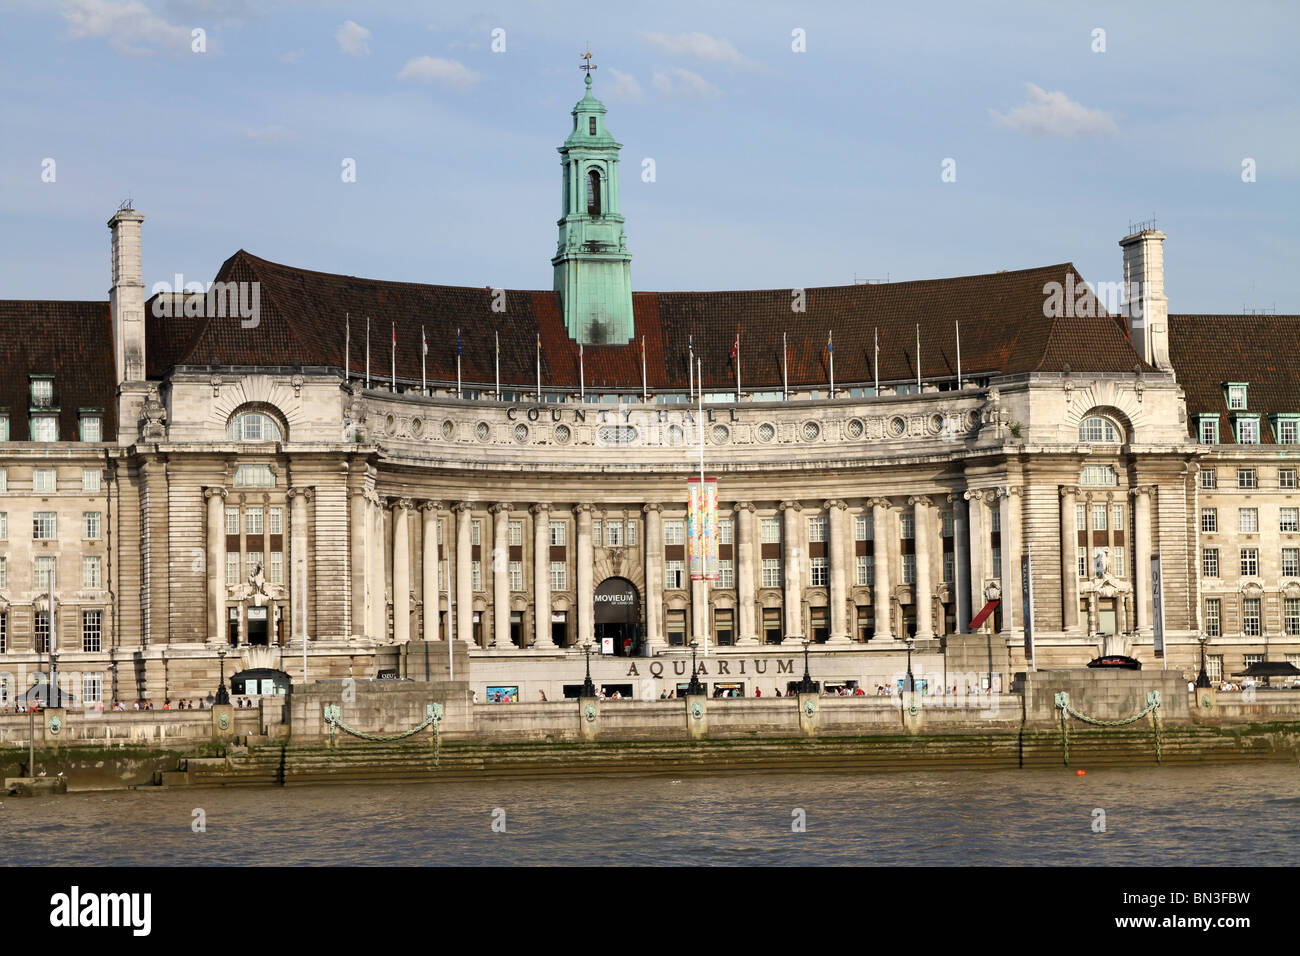 The Old County Hall Building And London Aquarium In London